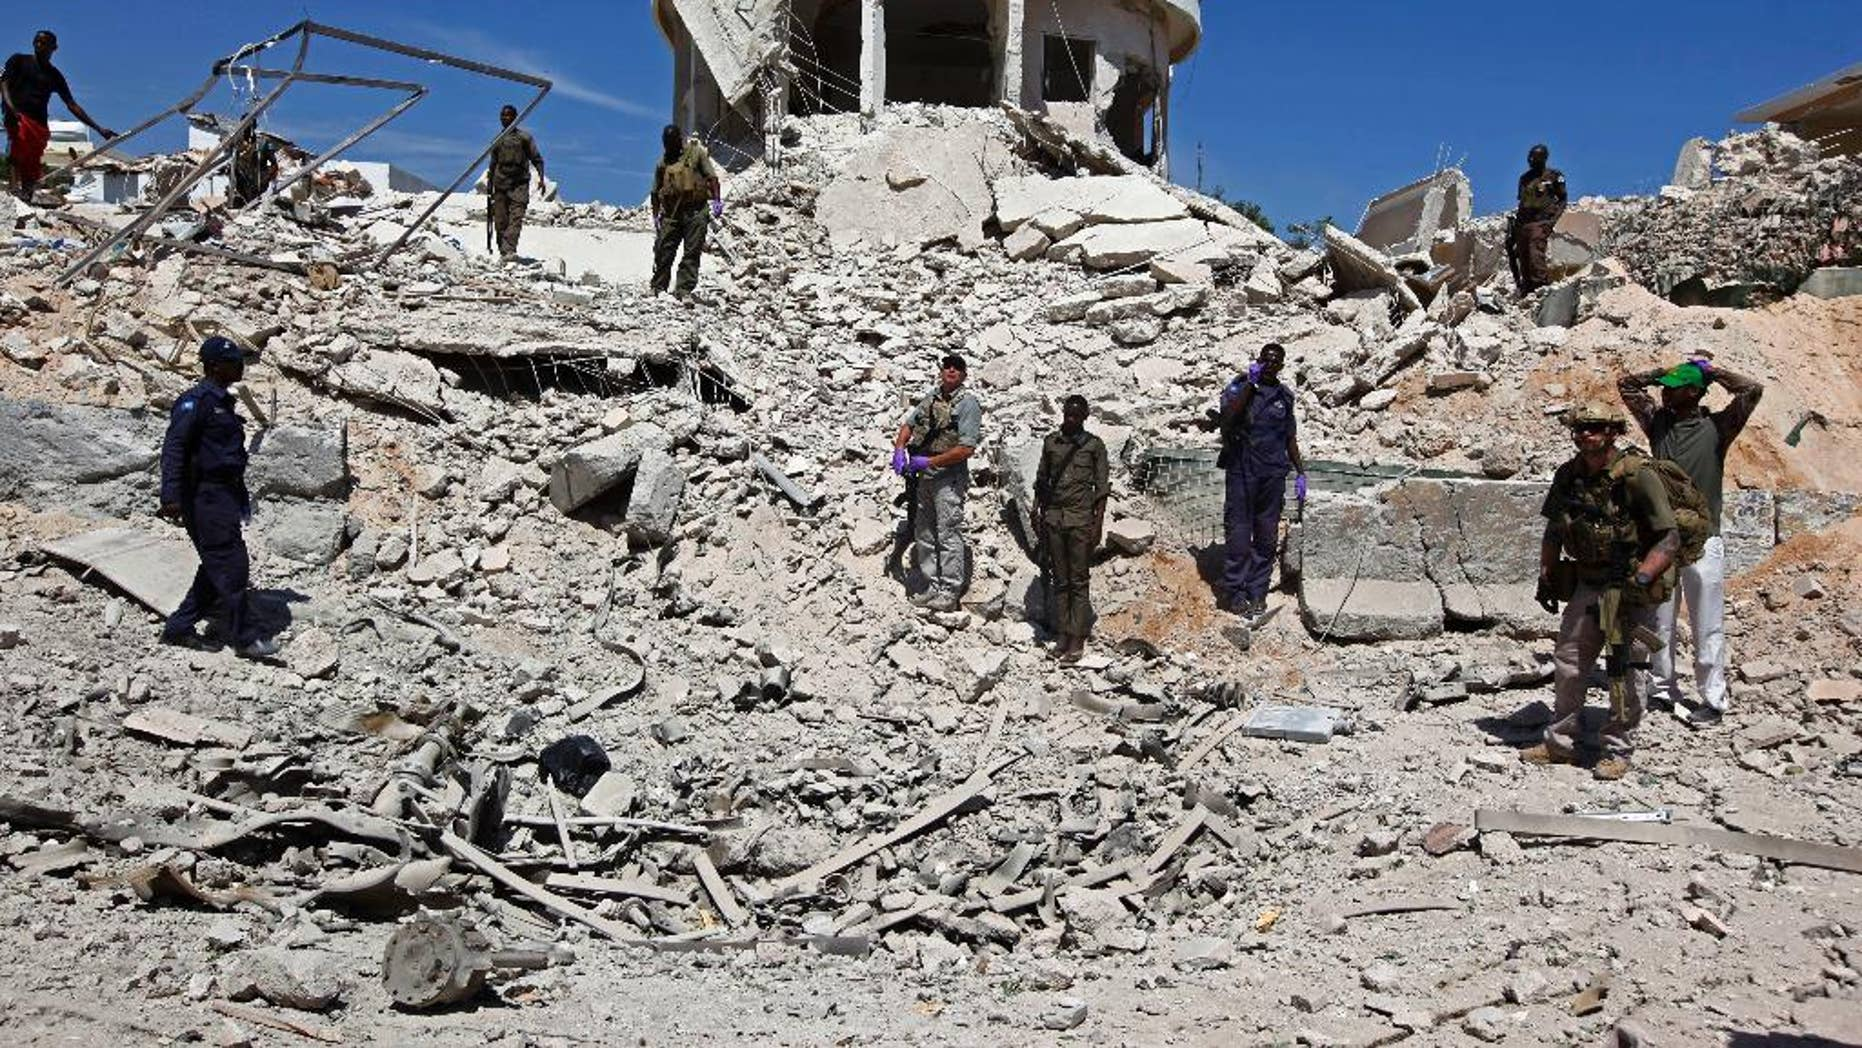 Soldiers stand in the rubble of a destroyed building near the scene of a suicide car bomb attack in Mogadishu, Somalia, Monday, Jan, 2, 2017. An attacker detonated an explosives-laden vehicle at a security checkpoint near Mogadishu's international airport, killing several people, according to a police officer. The assaults have threatened this Horn of Africa nation's attempts to rebuild from decades of chaos. The country's presidential election, a key step toward recovery, already has been delayed multiple times because of security and other concerns. (AP Photo/Farah Abdi Warsameh)